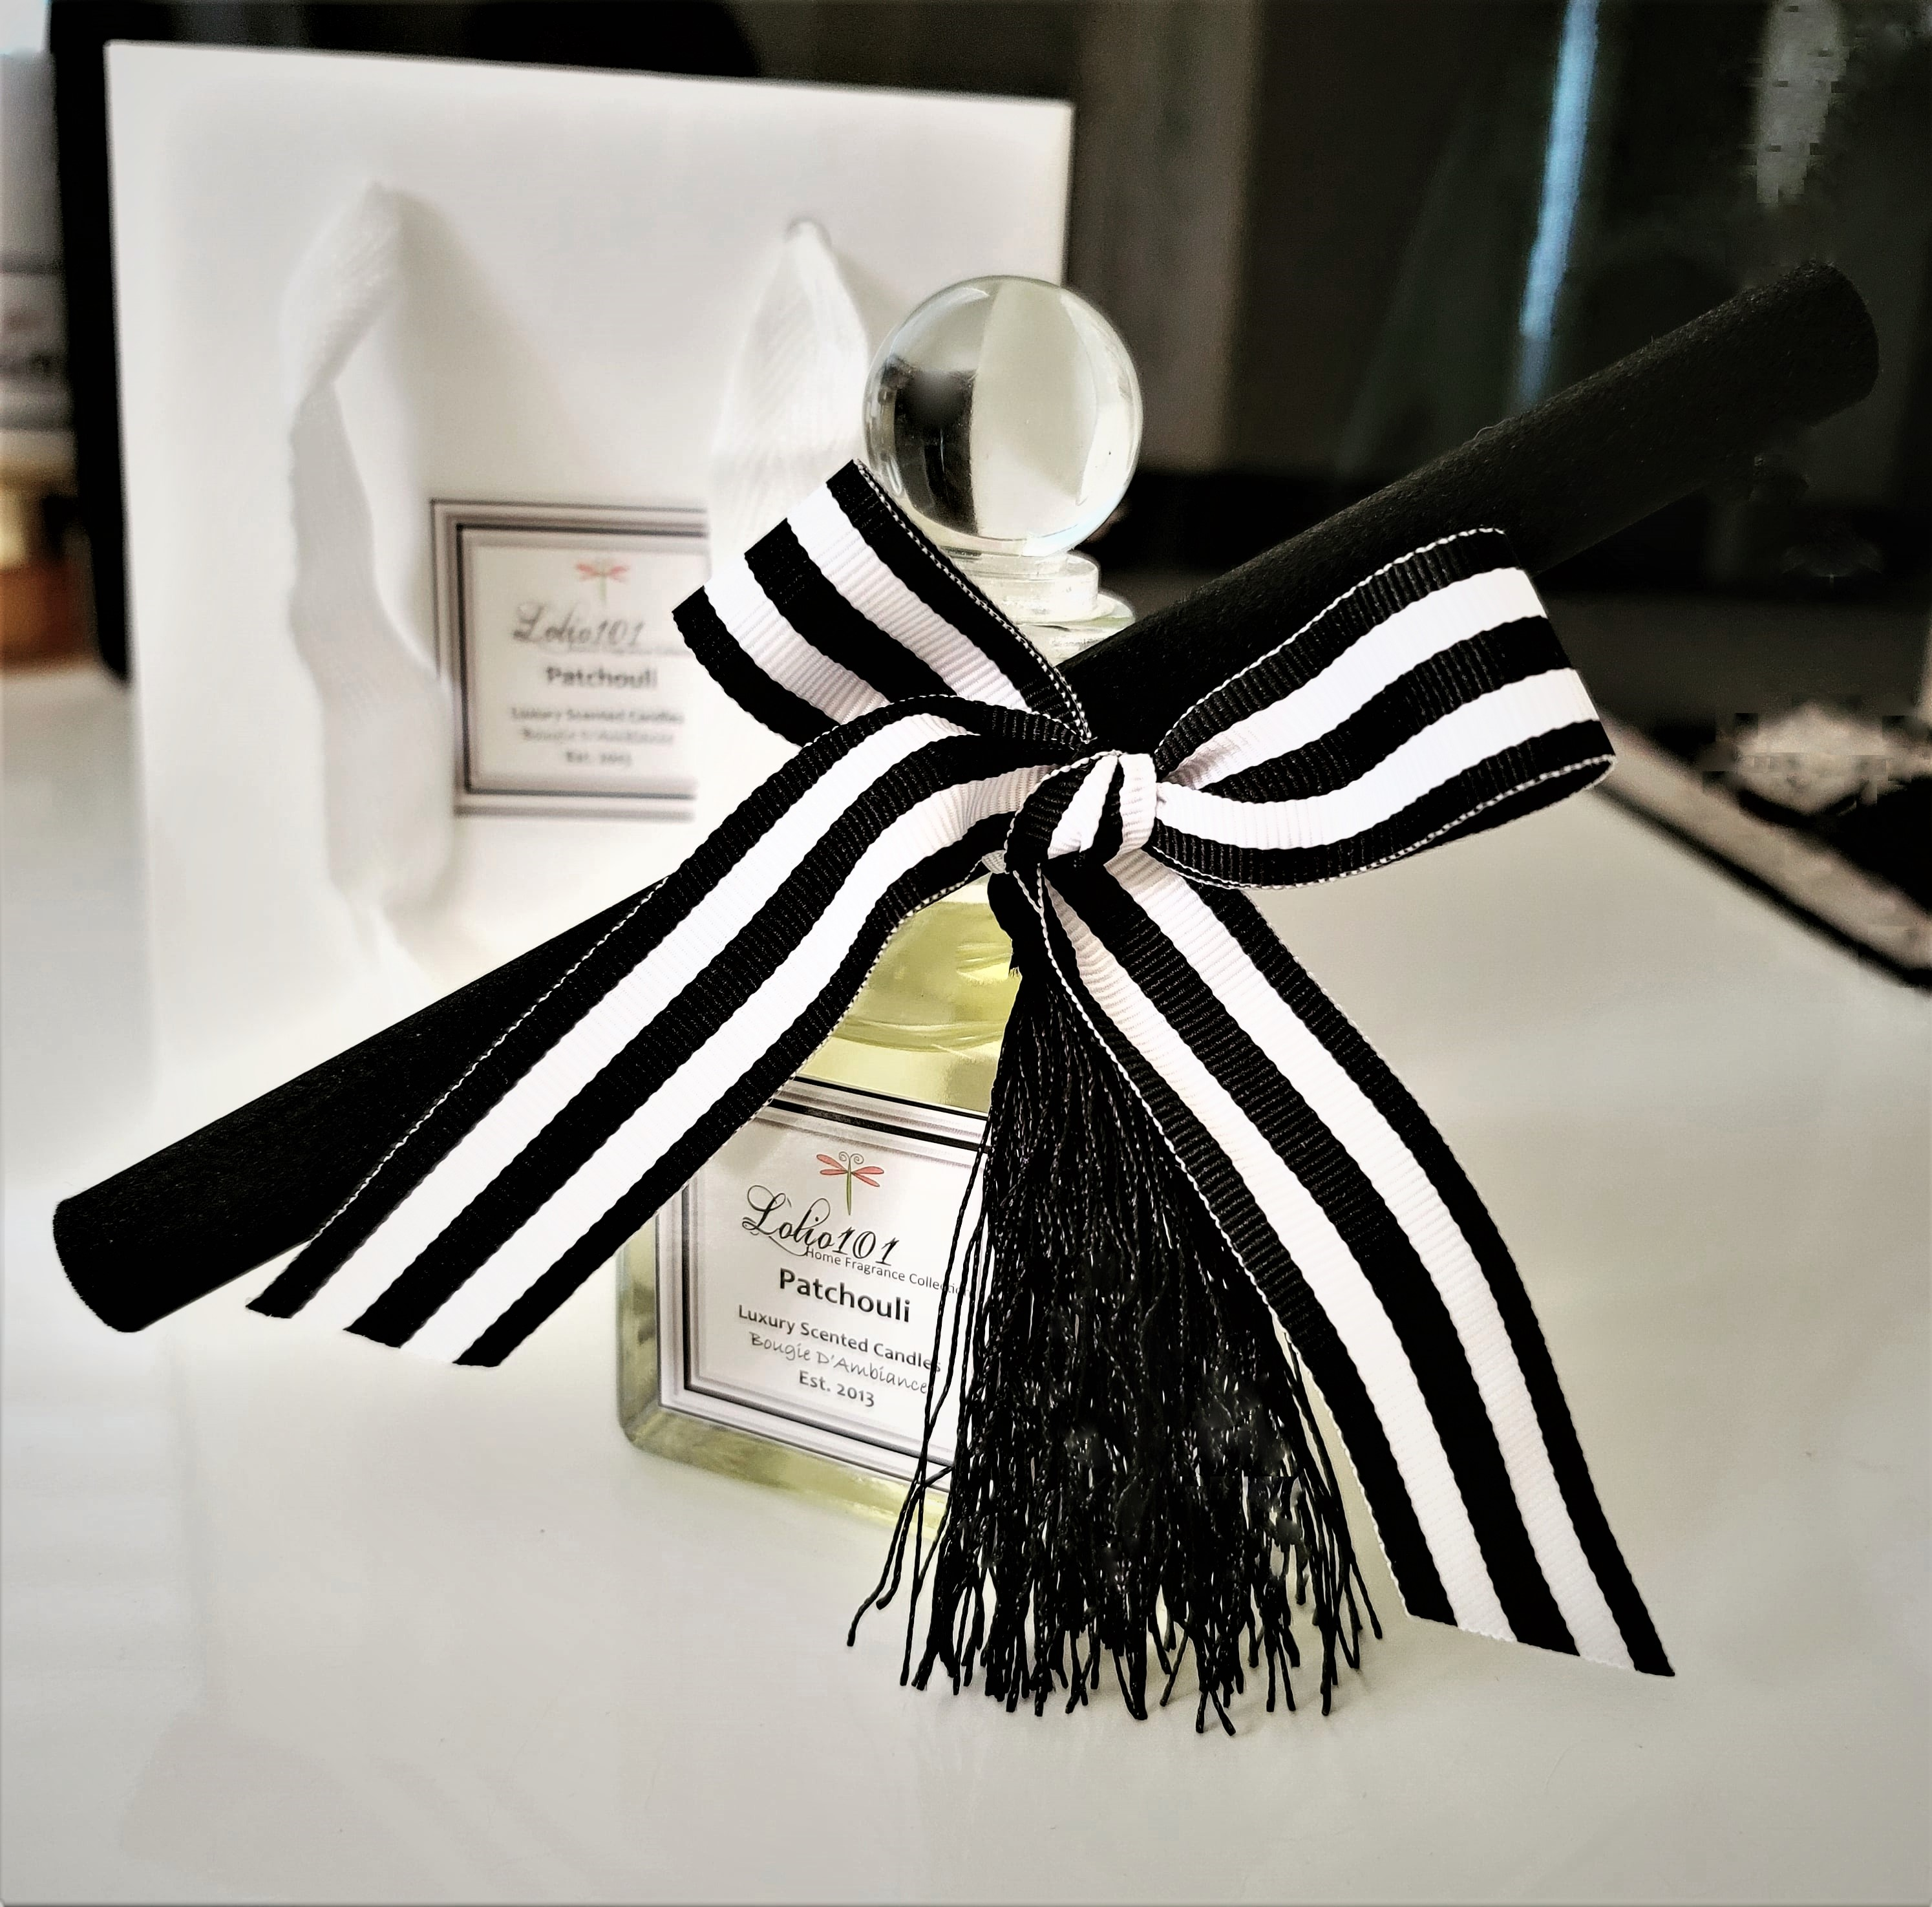 lolio101 reed diffuser glass ball closure glass bottle patchouli white bag black and white stripped